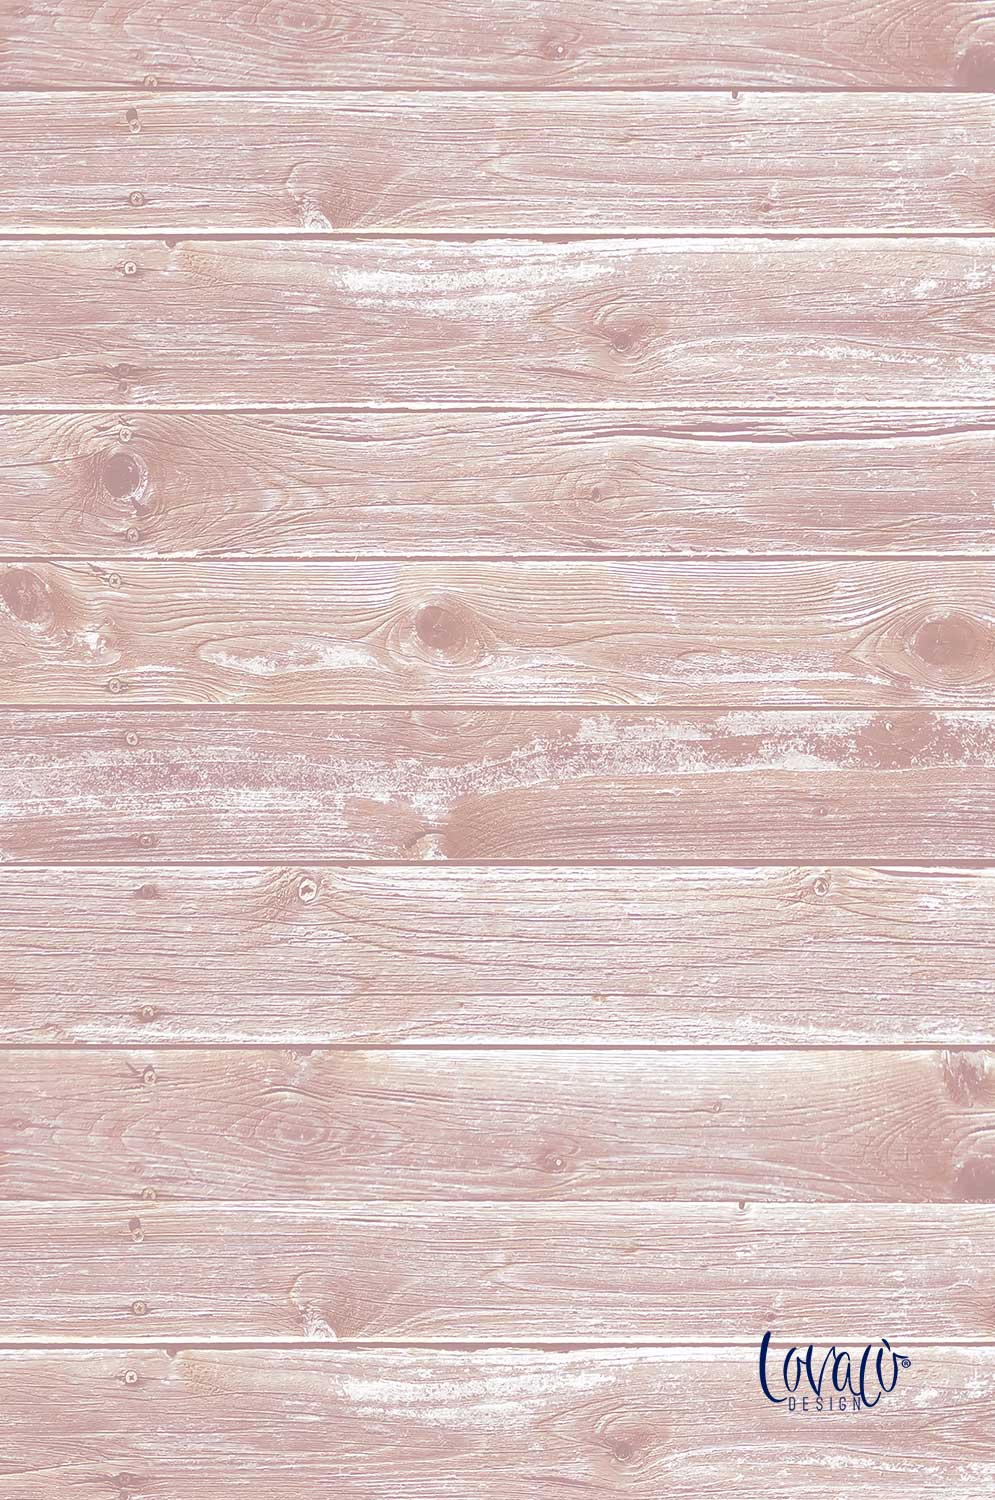 Pink wood photography backdrop - Lov 442